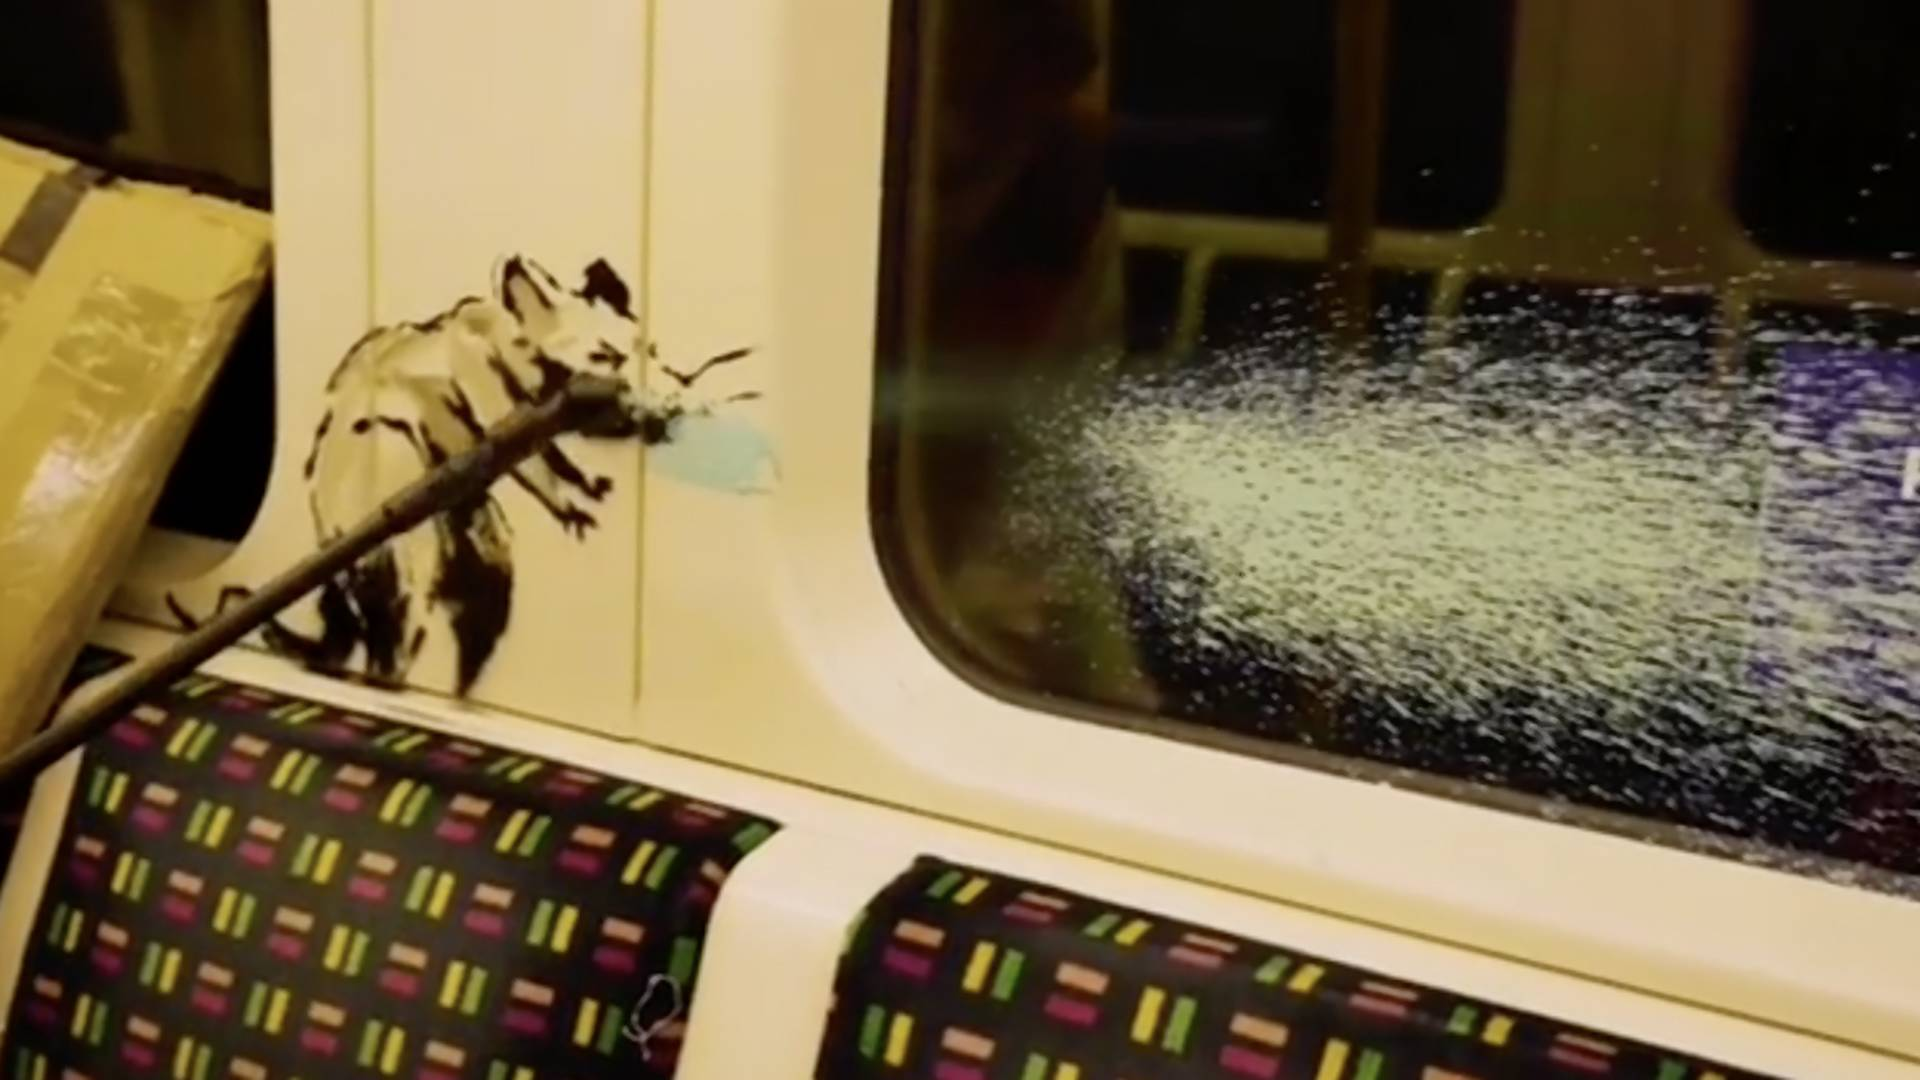 Video: Banksy zeigt neues Corona-Banksy in Londoner U-Bahn